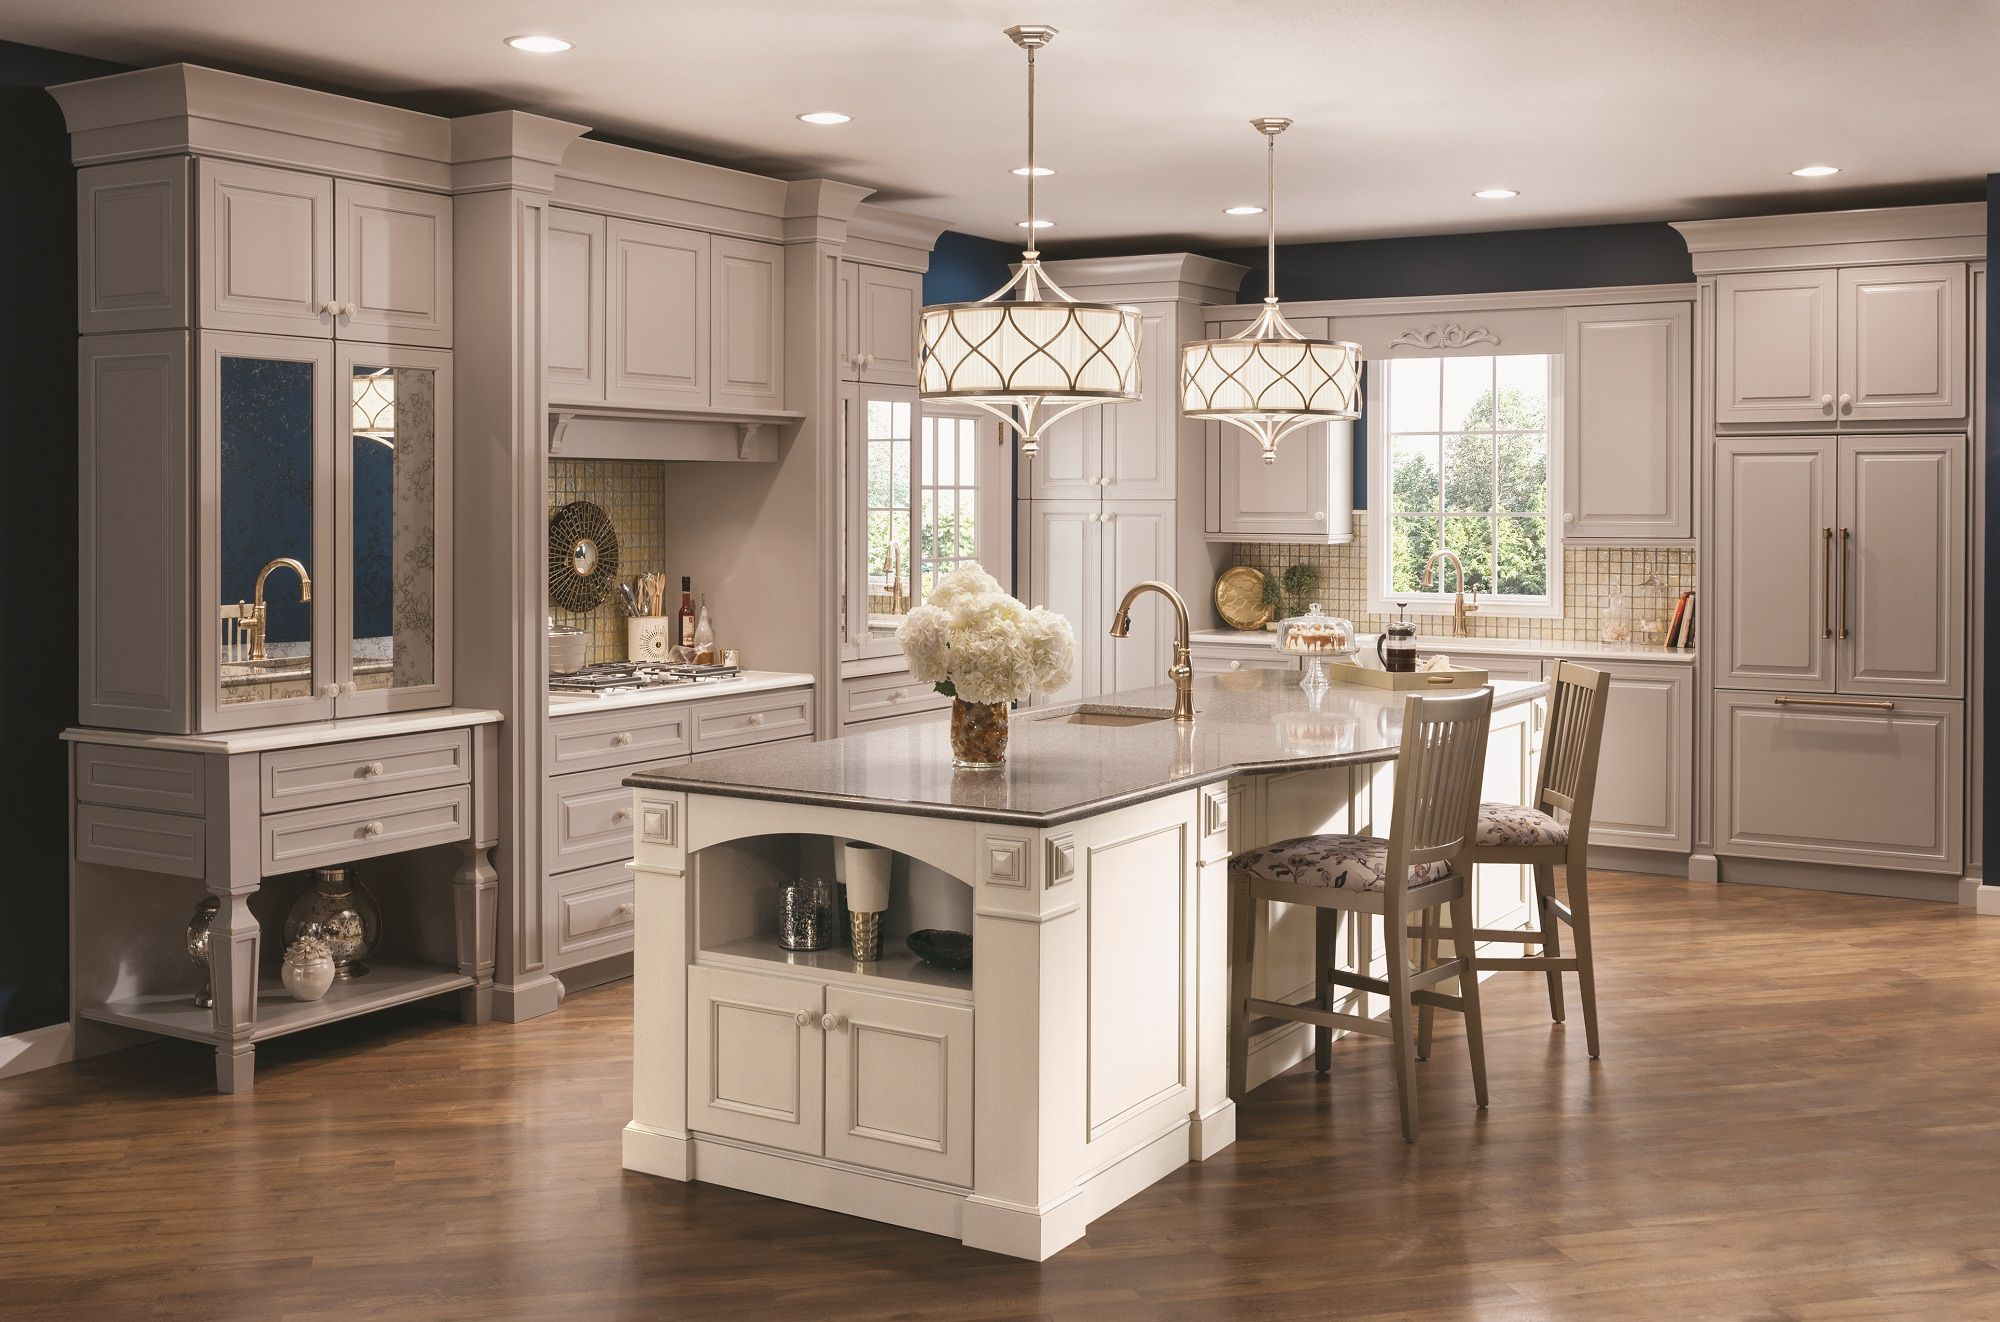 Kraftmaid cabinetry Special Order Templeton Cherry Vintage